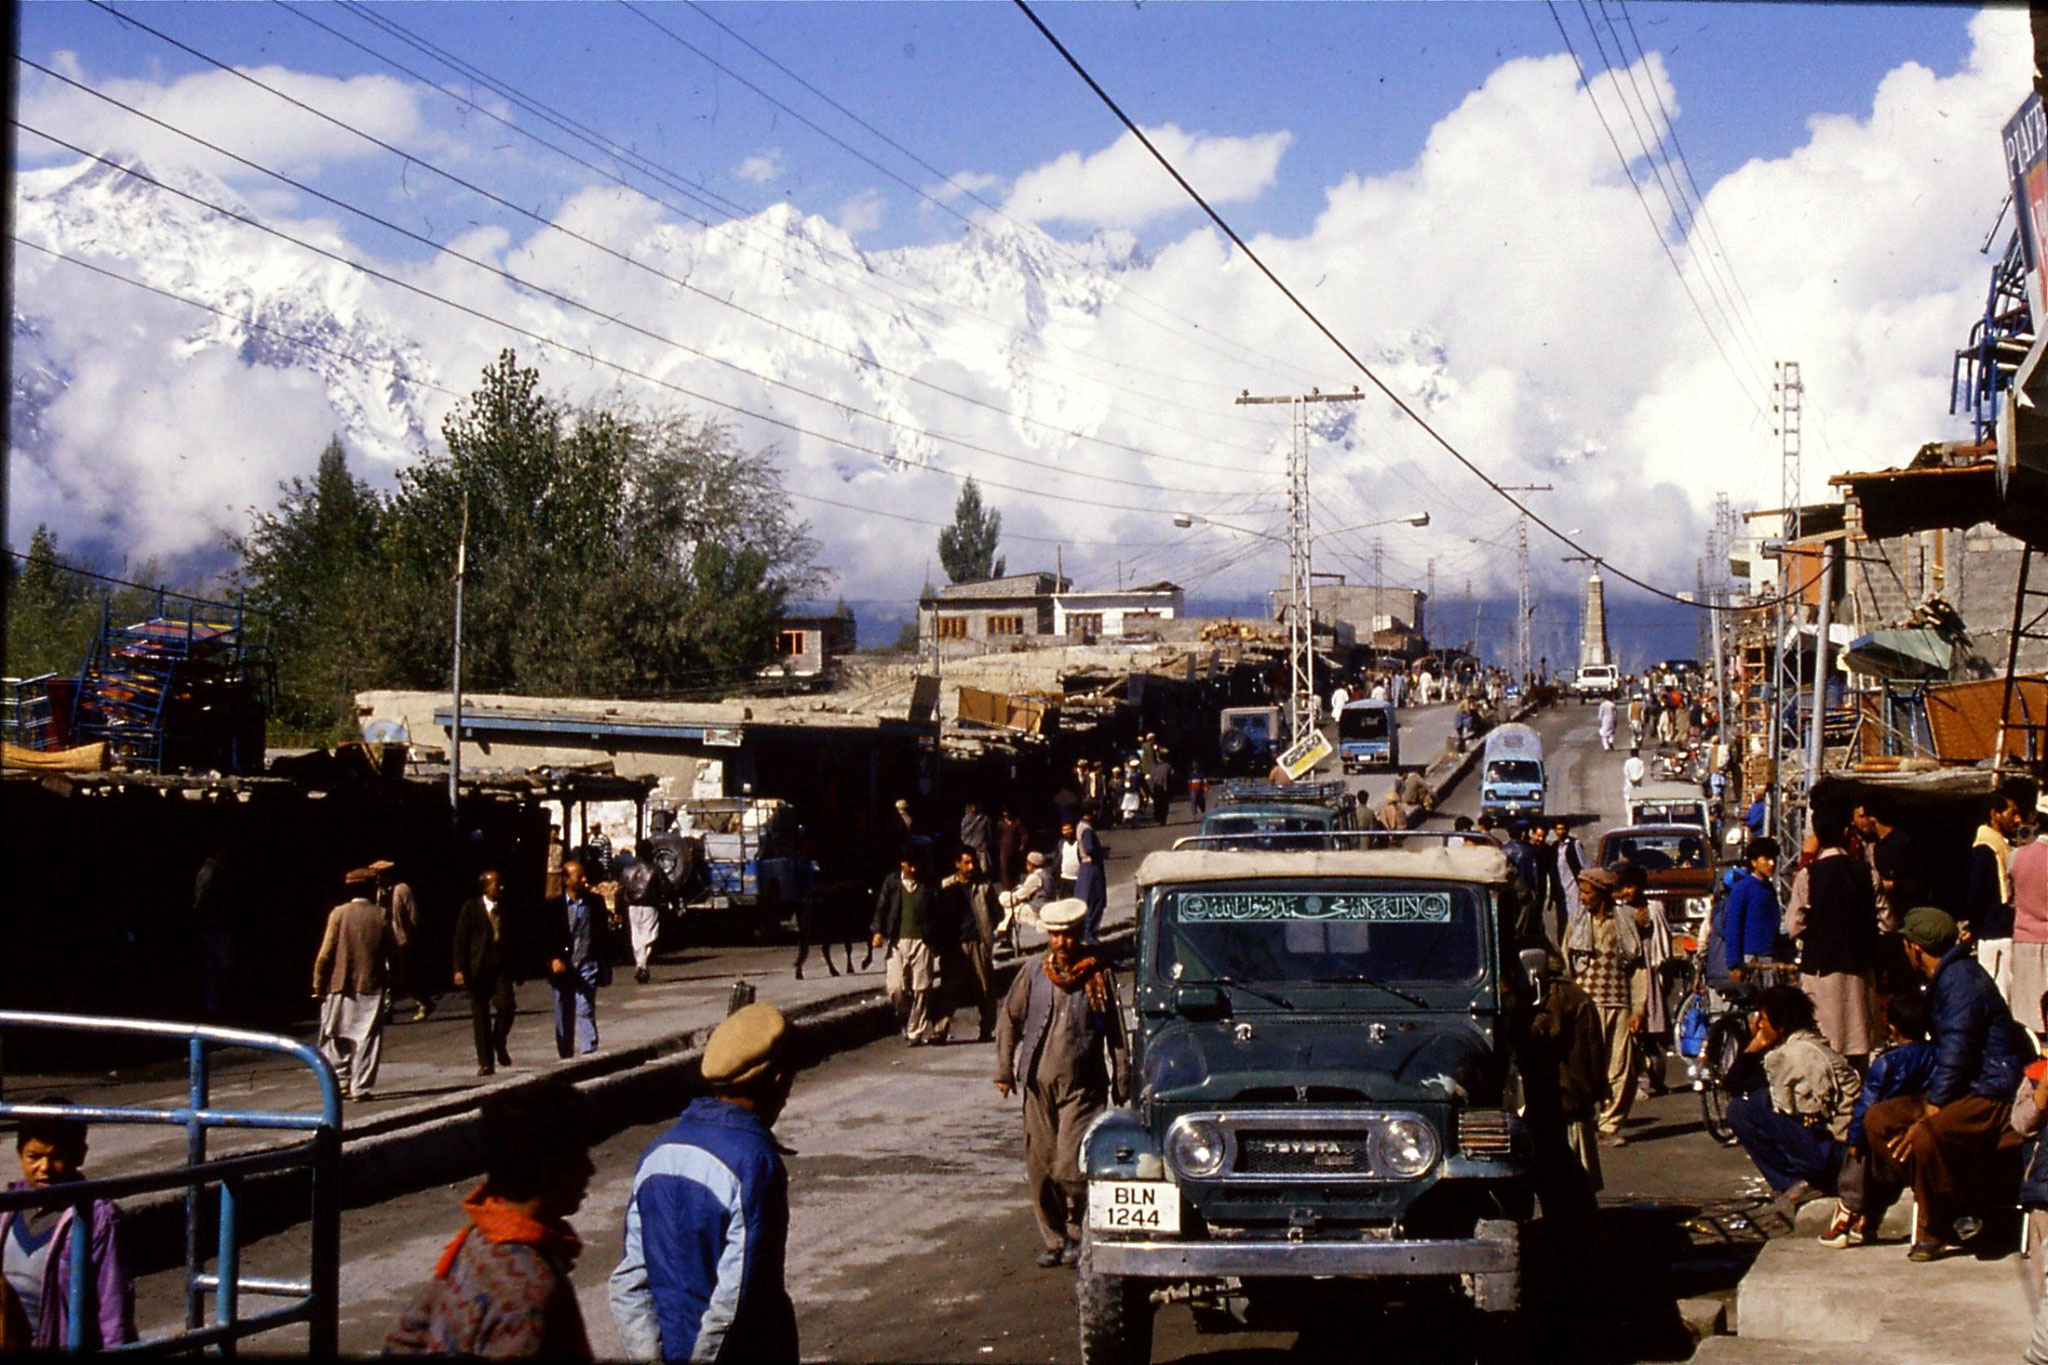 13/10/1989: 15: Skardu, main street looking west